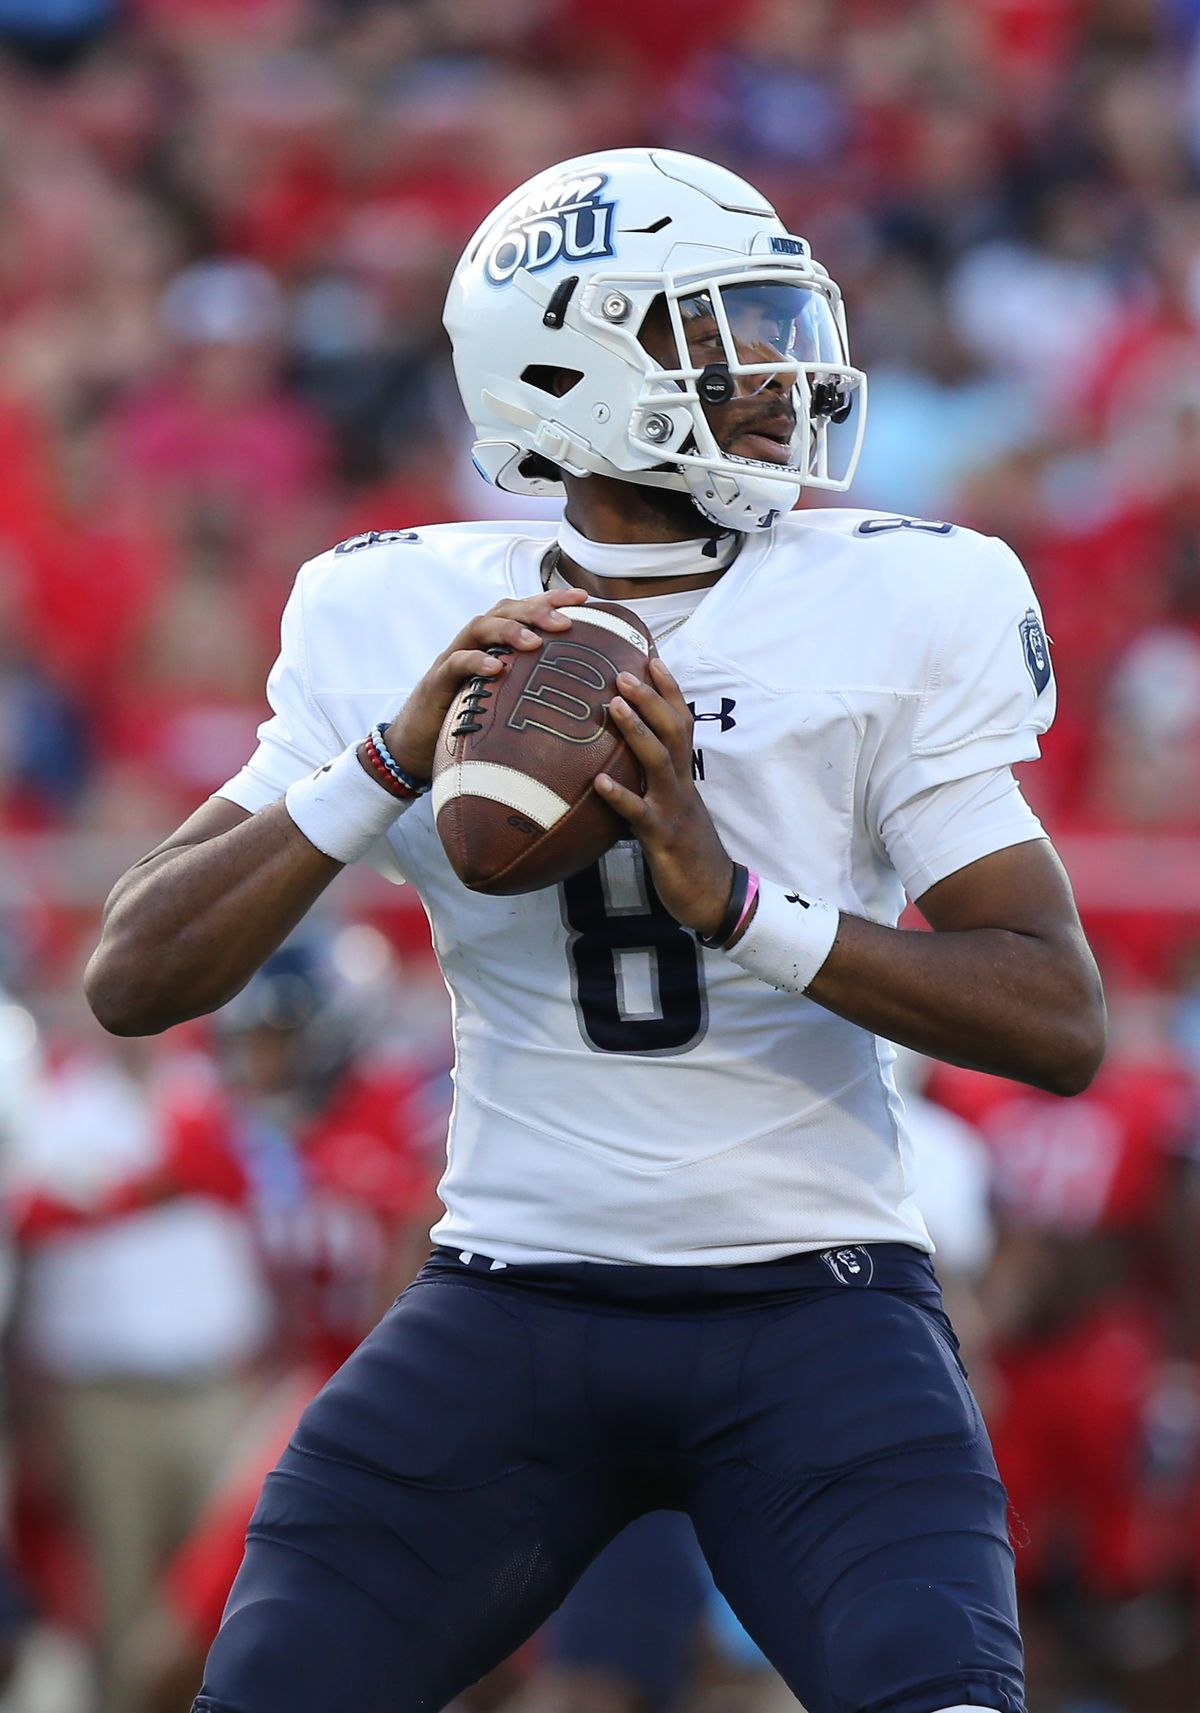 COLLEGE FOOTBALL: SEP 18 Old Dominion at Liberty